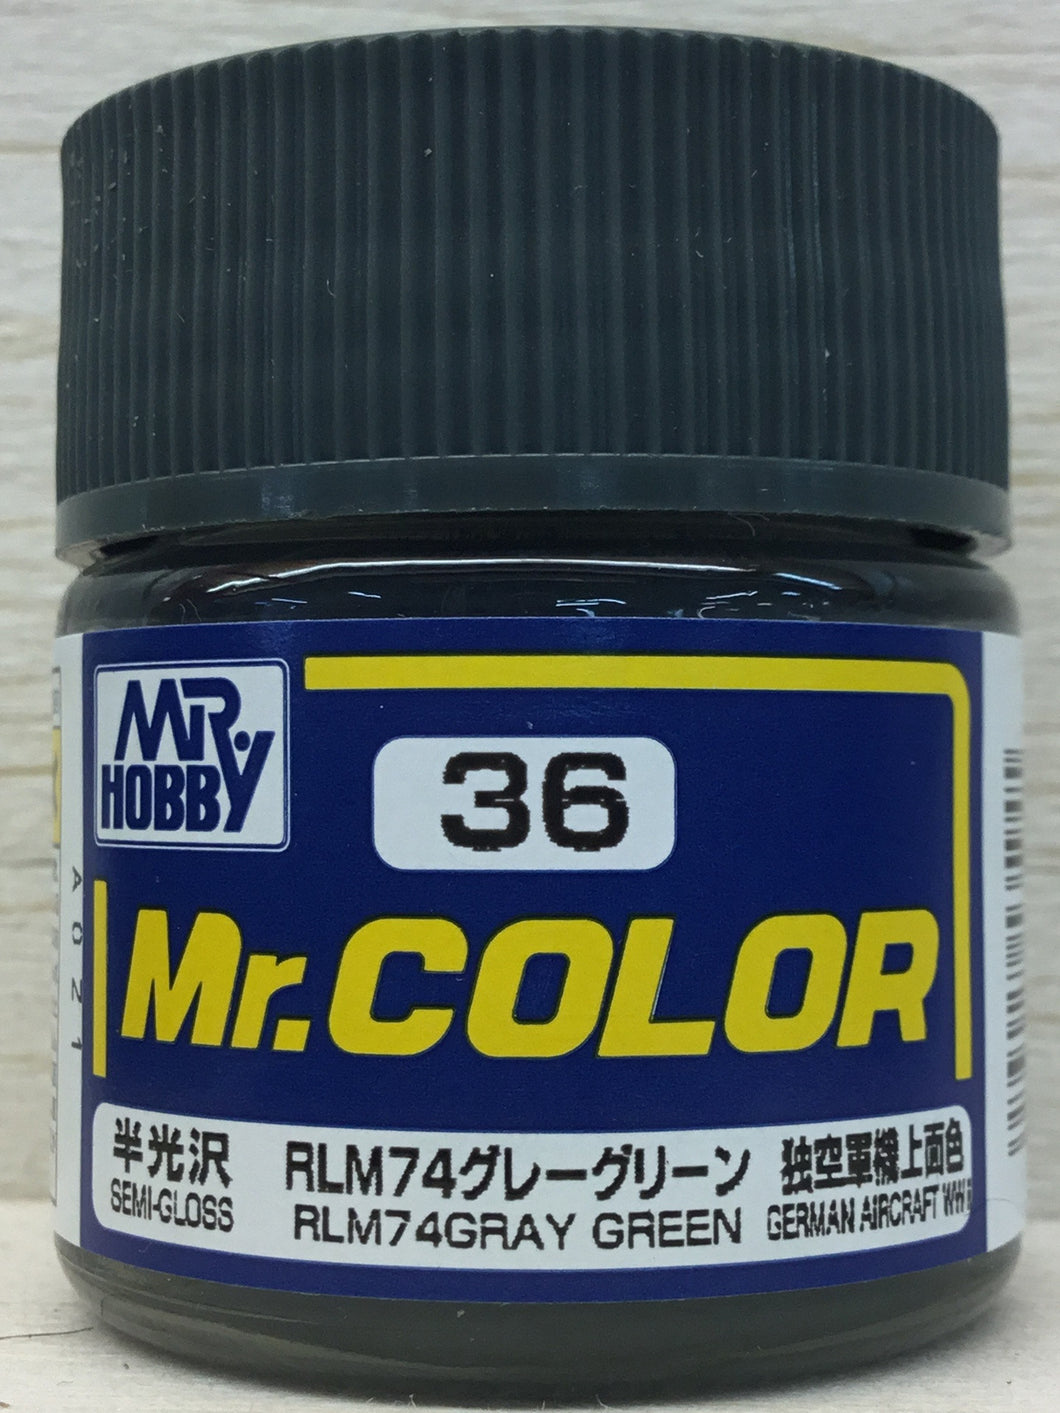 GUNZE MR COLOR C36 SEMI GLOSS RLM 74 GRAY GREEN